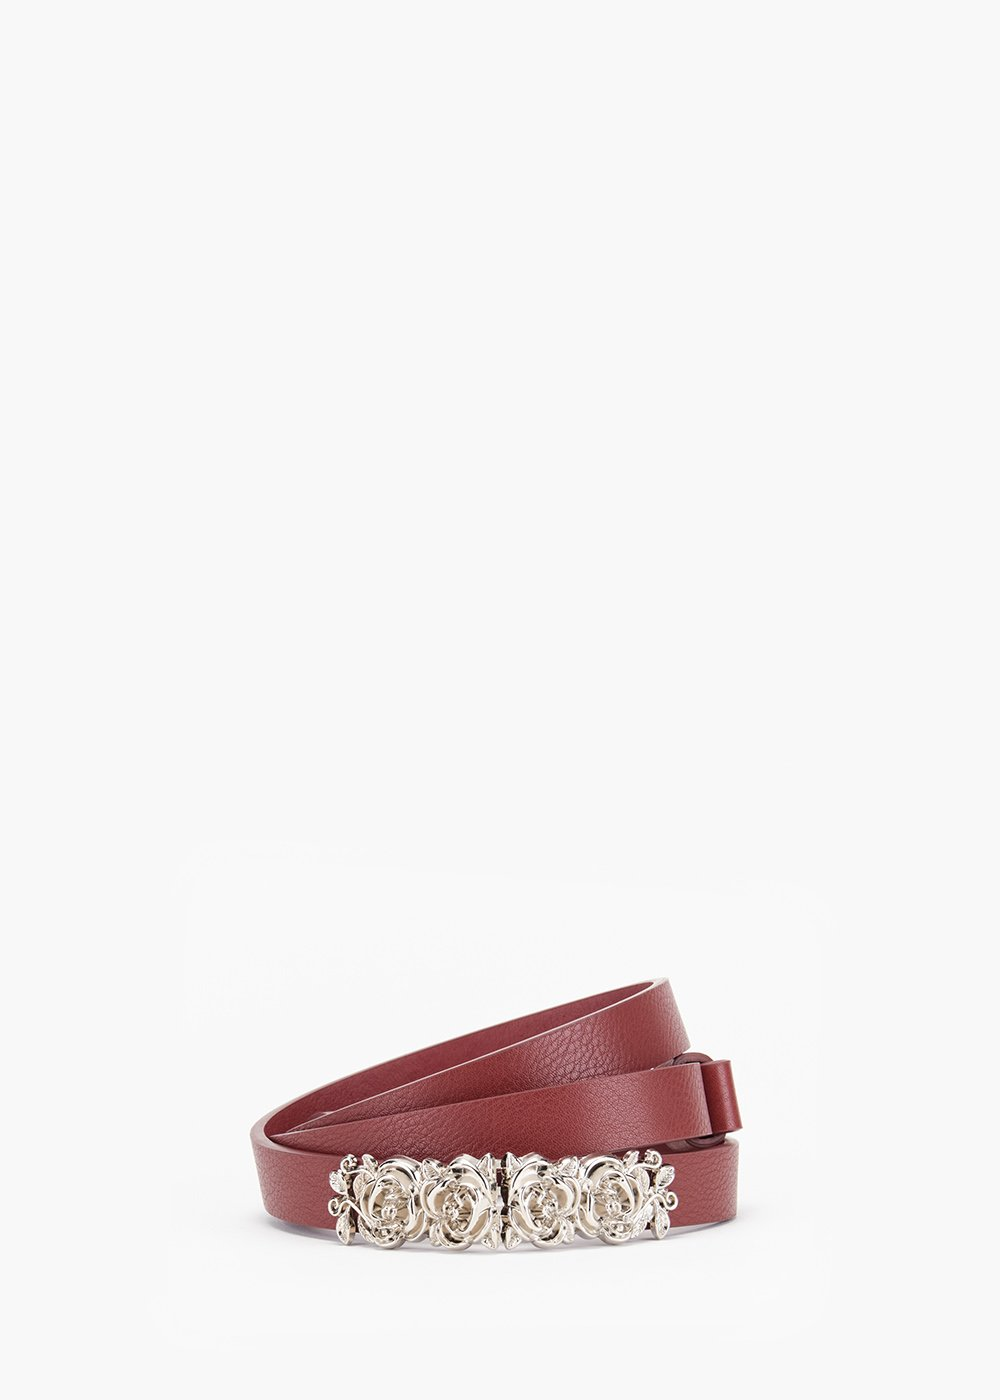 Cathie strap in eco leather with floral metal buckle